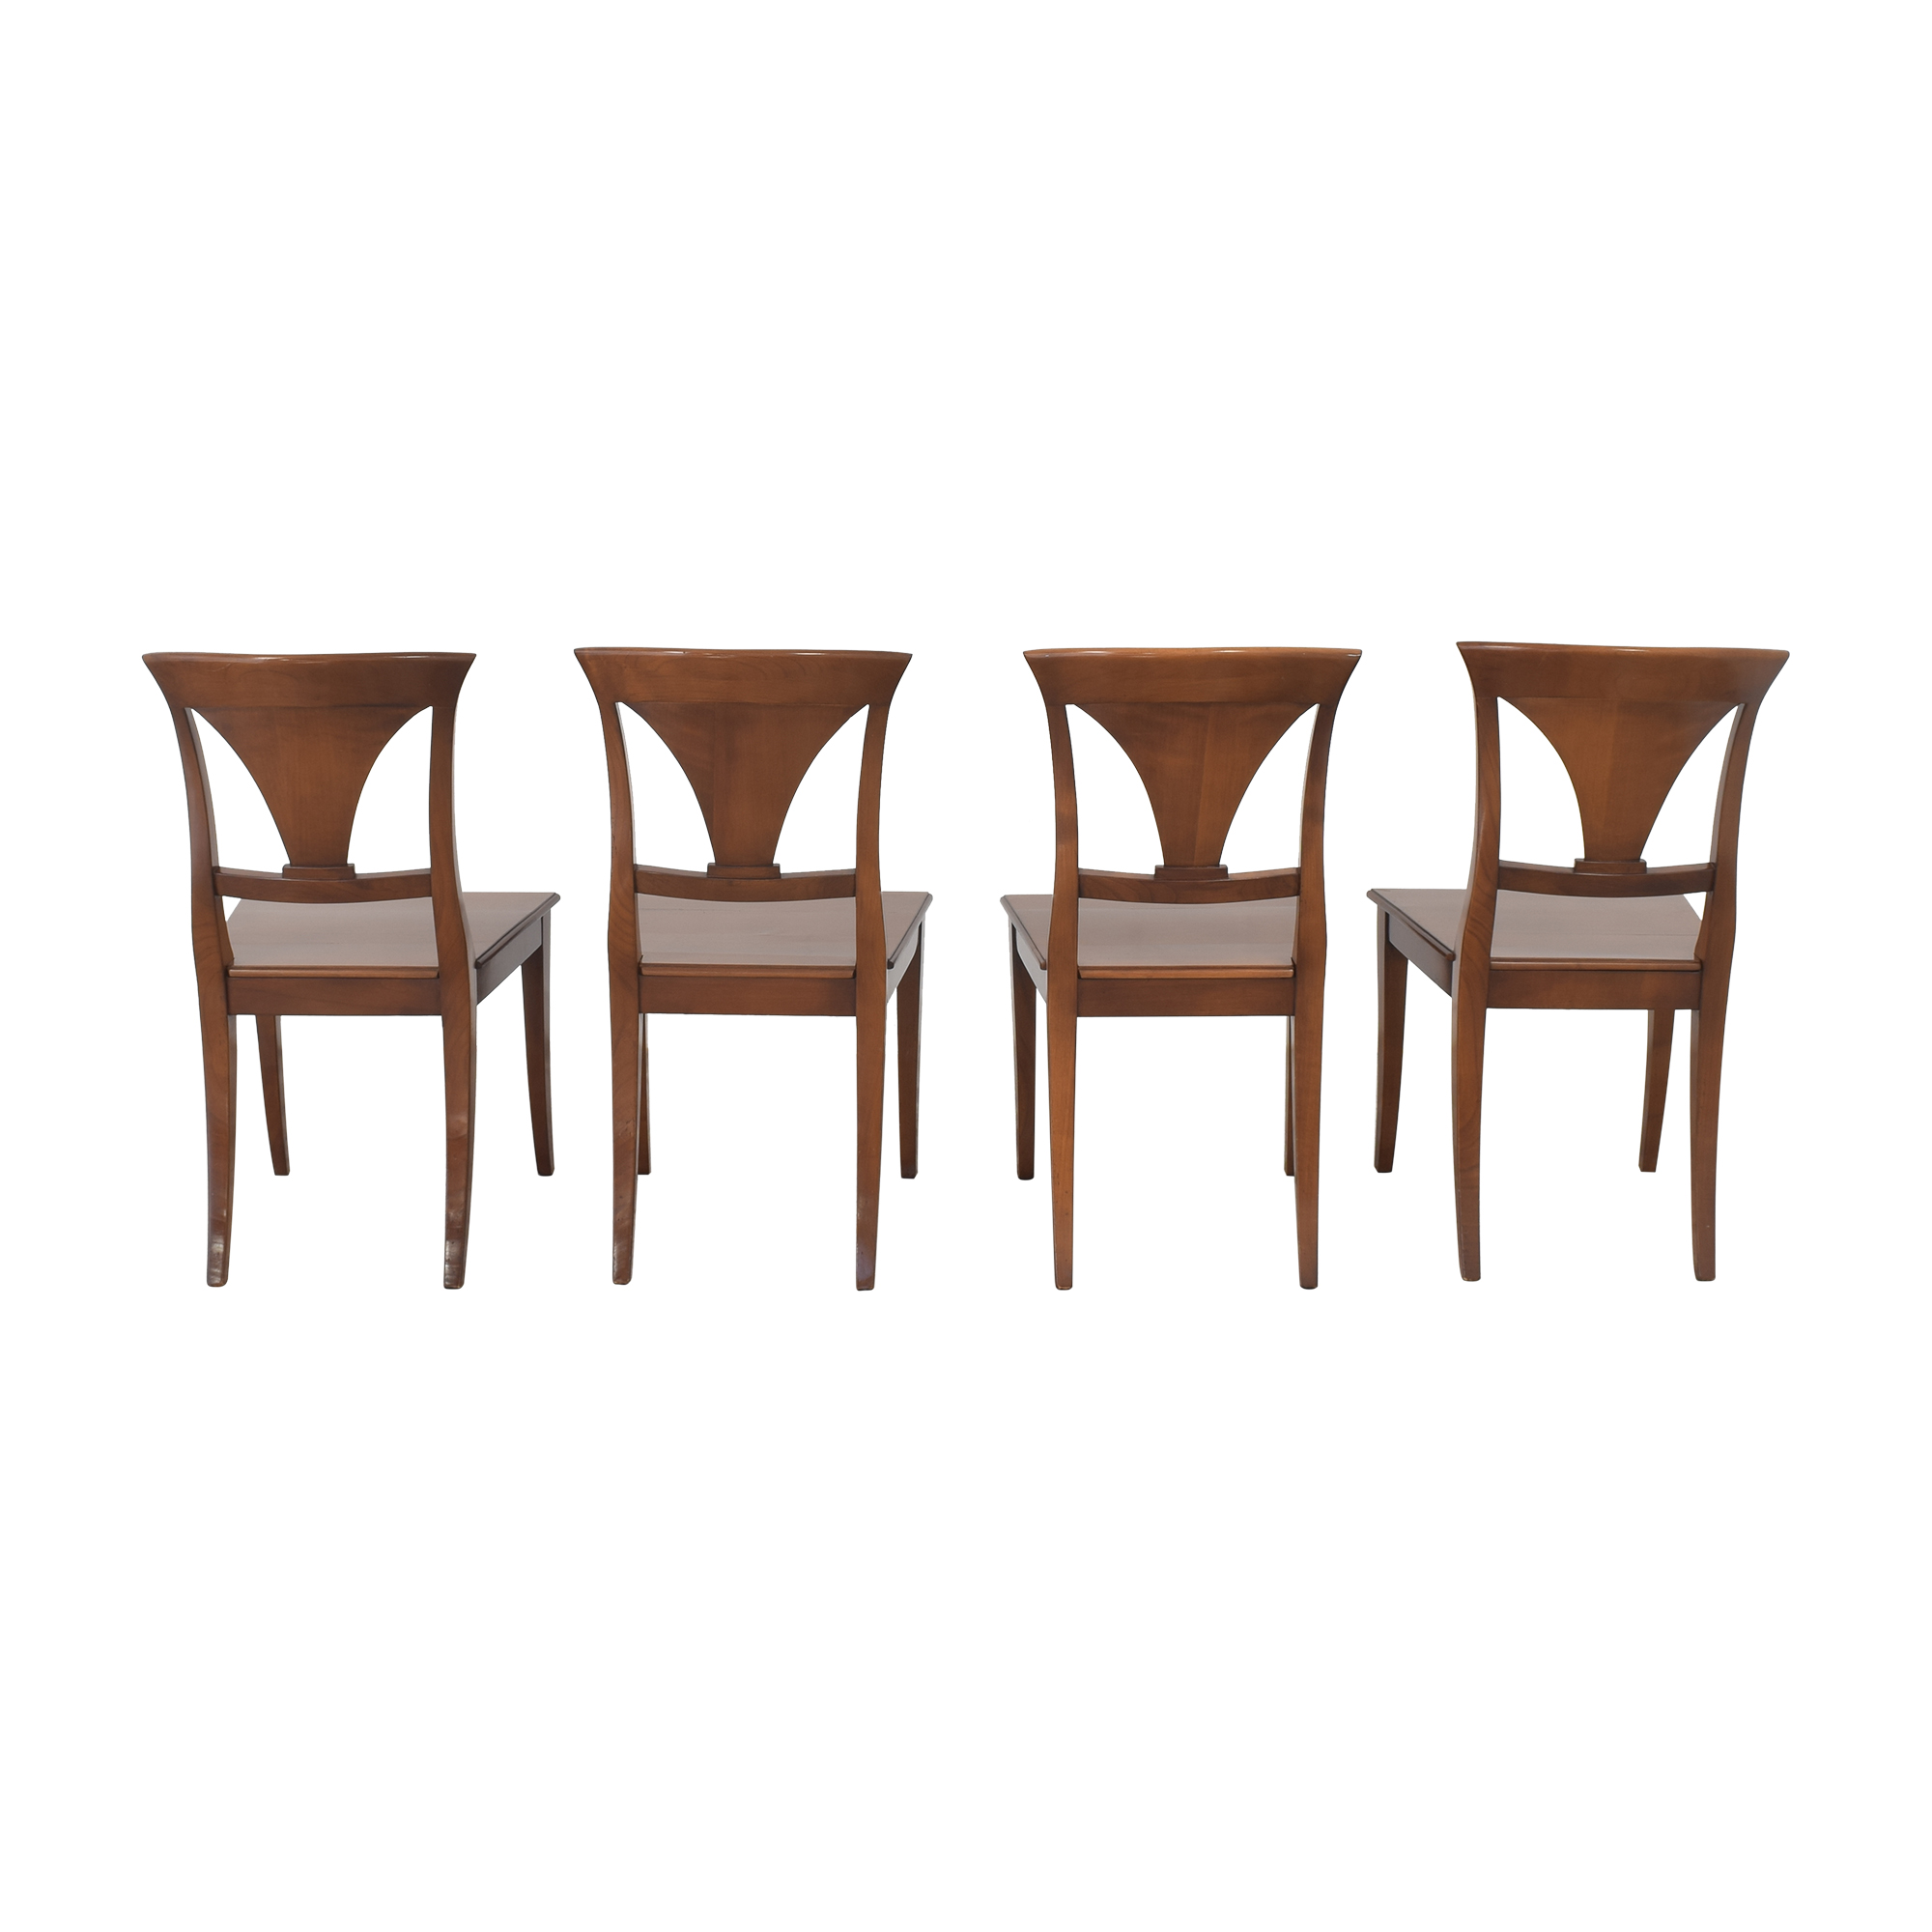 Pfister Pfister Swiss Style Dining Chairs coupon